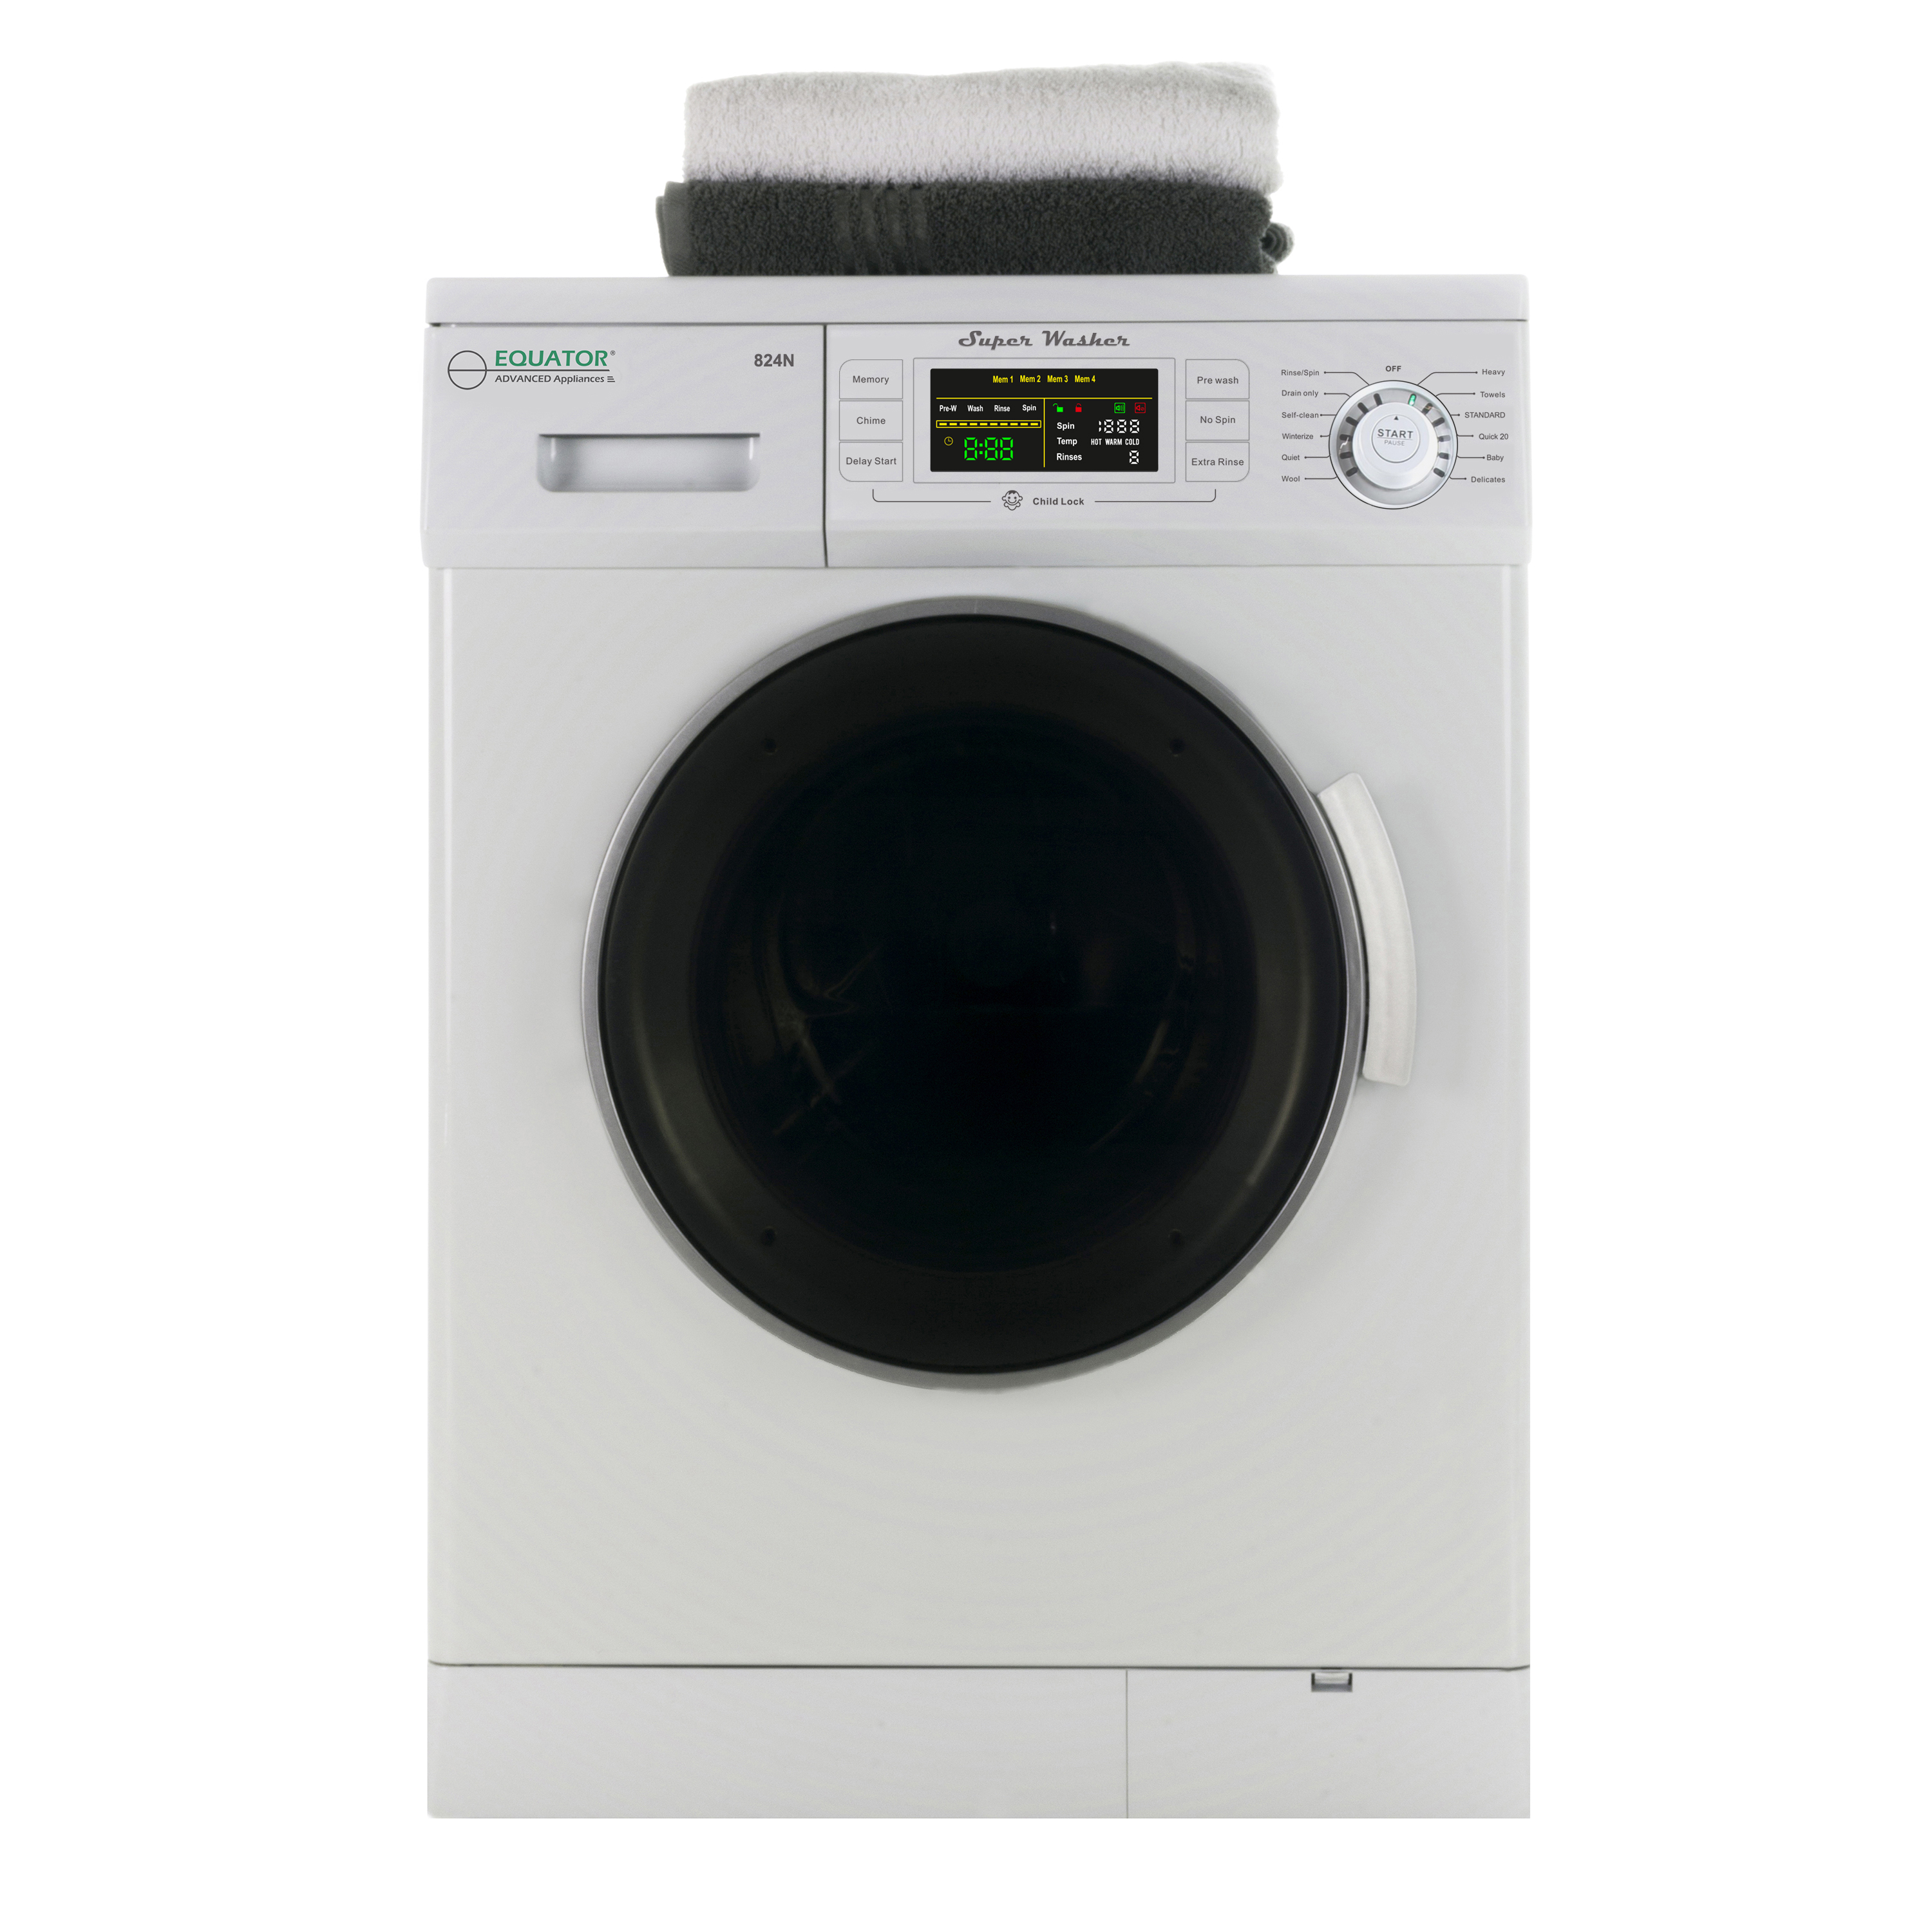 1.6 Cu. Ft. New Version Compact Front Load Washer with 1200 RPM and Automatic Water Level